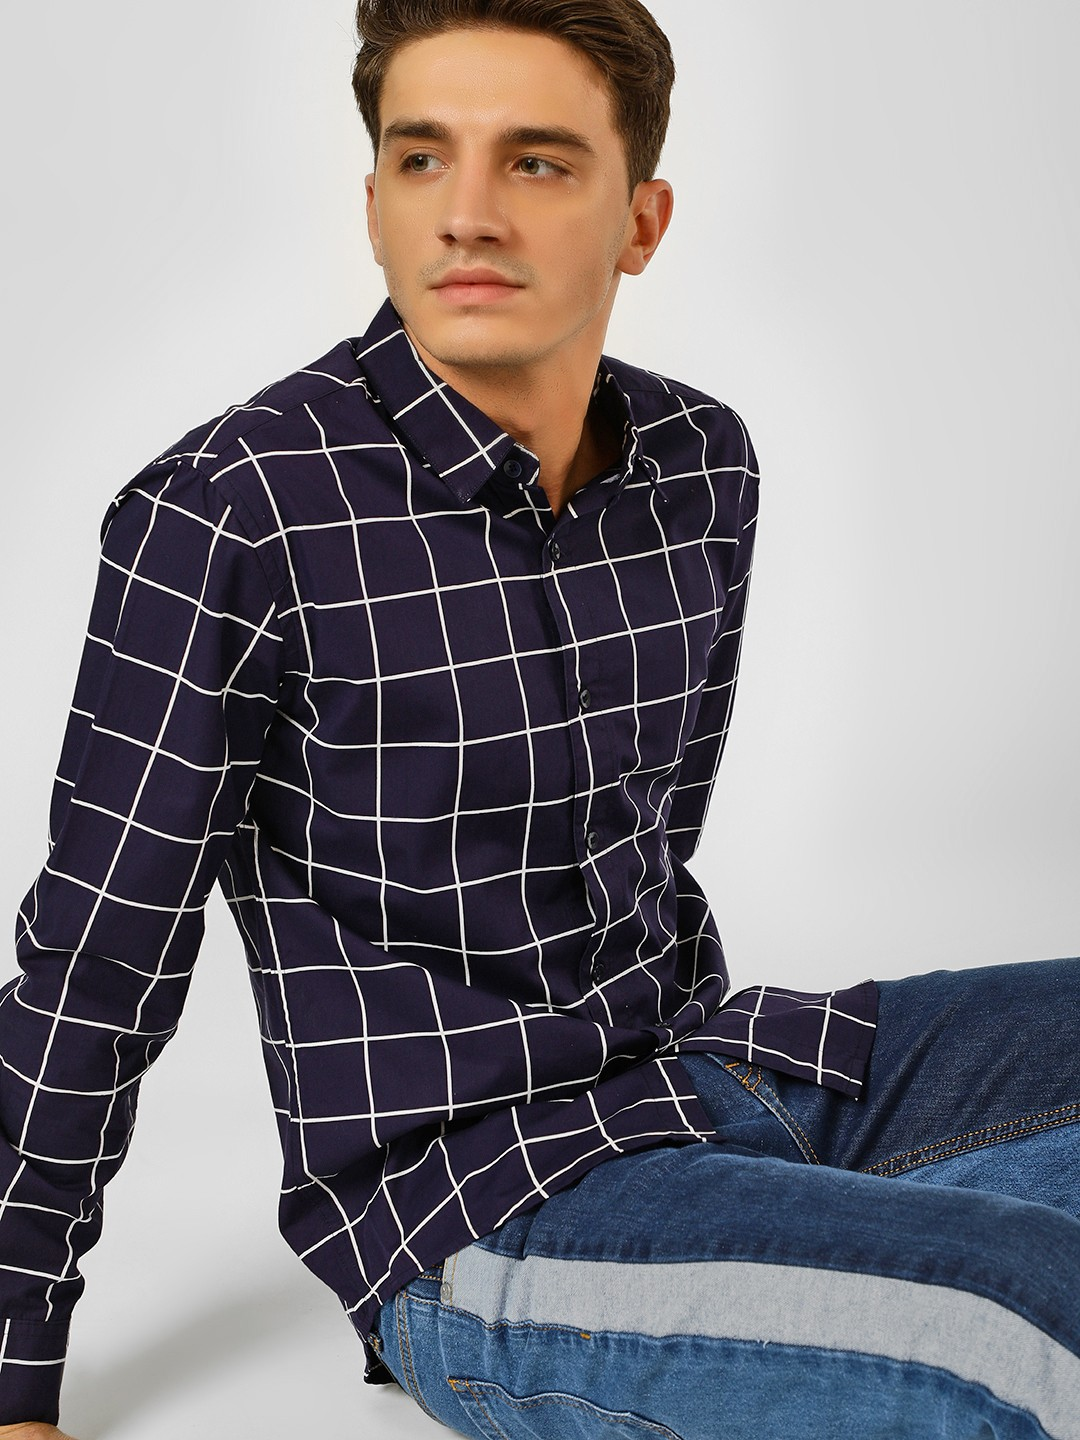 X.O.Y.O Blue Windowpane Check Casual Shirt 1